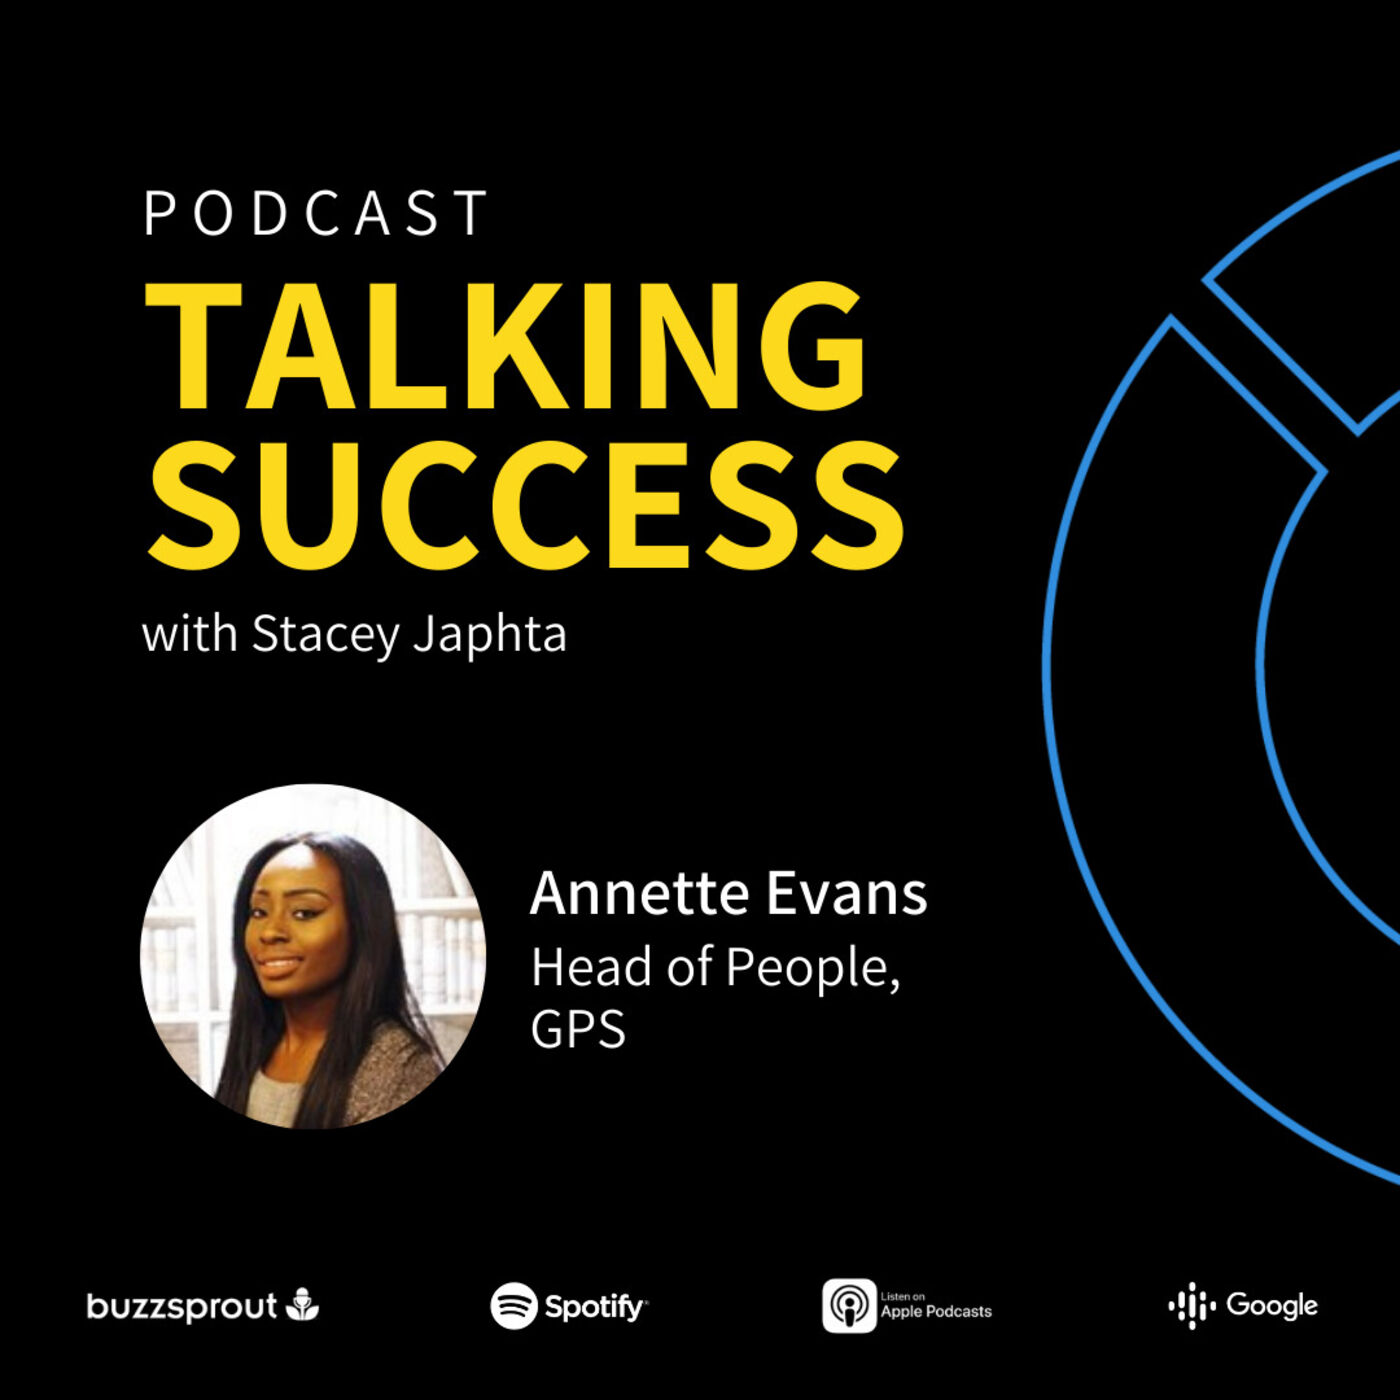 Annette Evans, Head of People at GPS - All things FinTech, hiring the top software developers, & her experience as the first black female at GPS